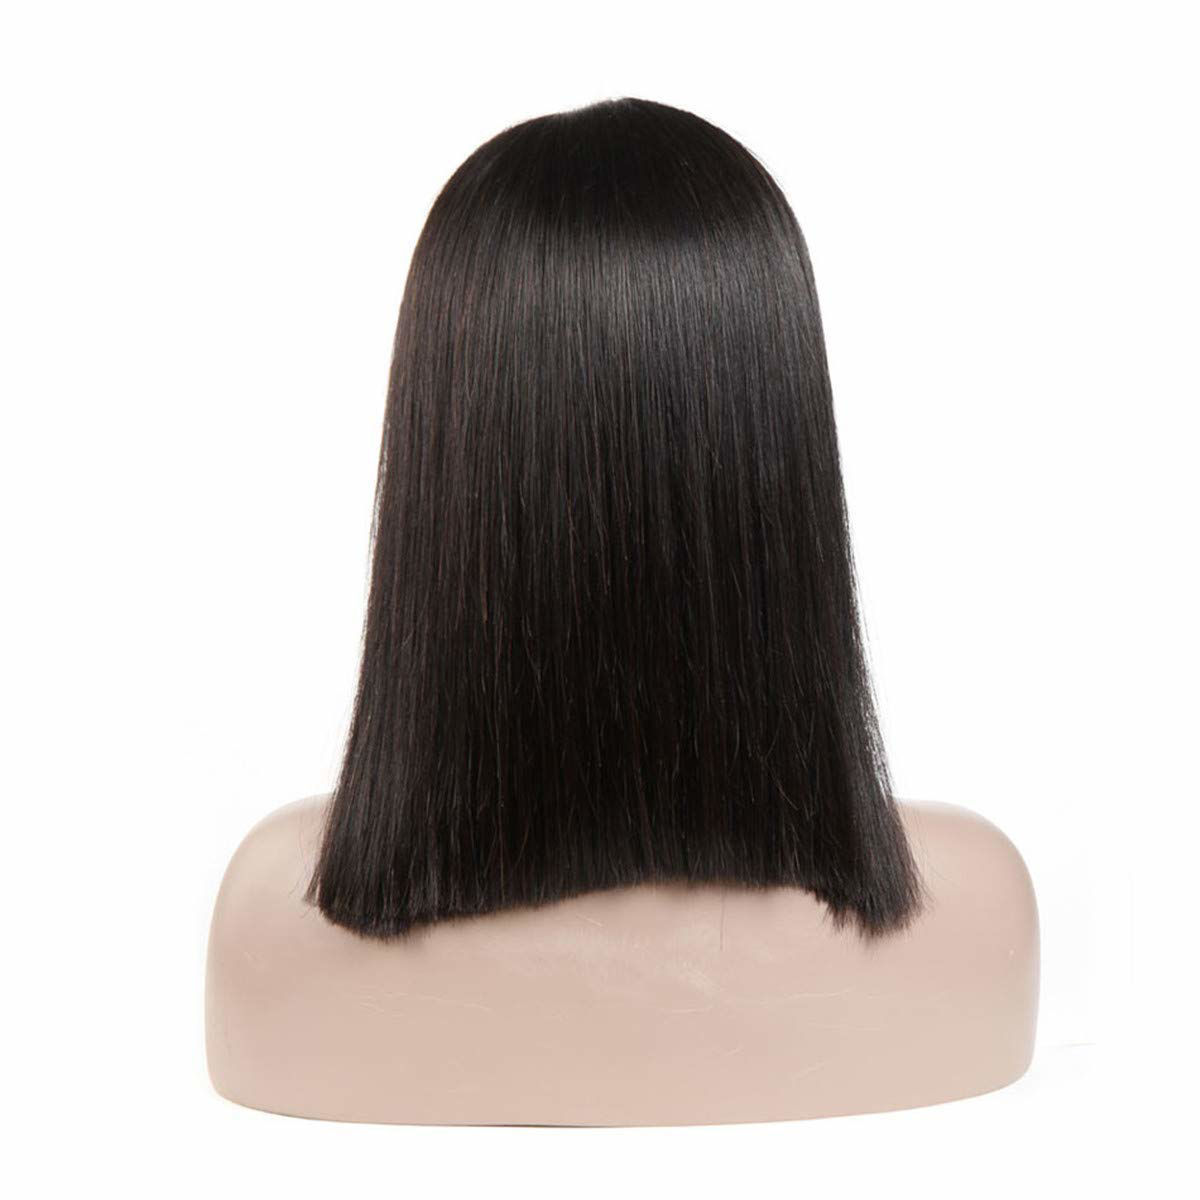 Natural Black Bob Wigs Brazilian Virgin Hair Straight 13x6 Deep Part Bob Lace Front Wig for Women Pre Plucked Natural Hairline Short 8 Inch